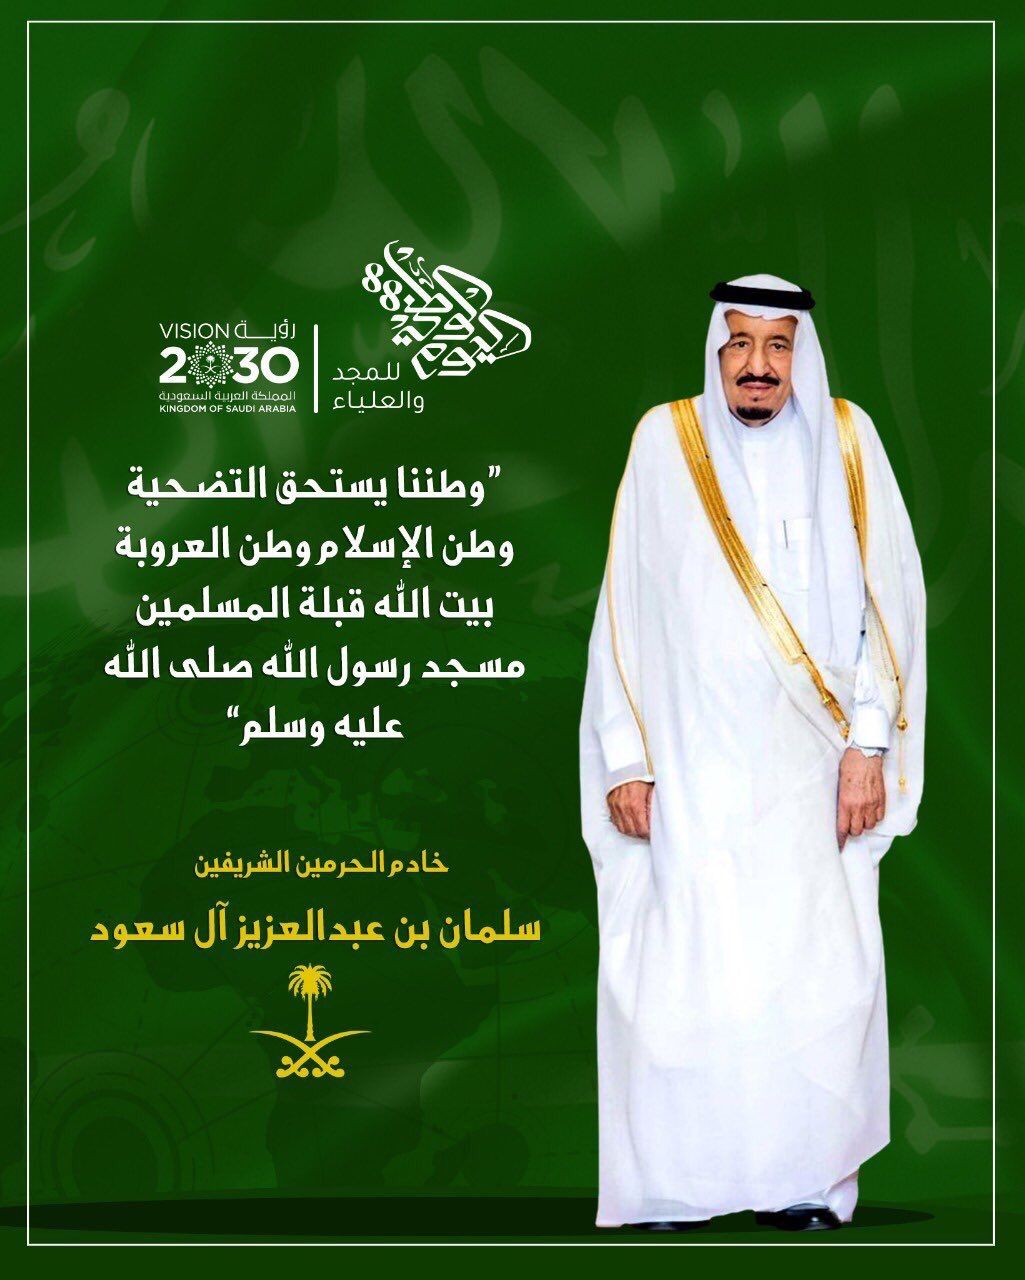 Pin By Hayfa A On Al Saud National Day Saudi Saudi Arabia Flag King Salman Saudi Arabia